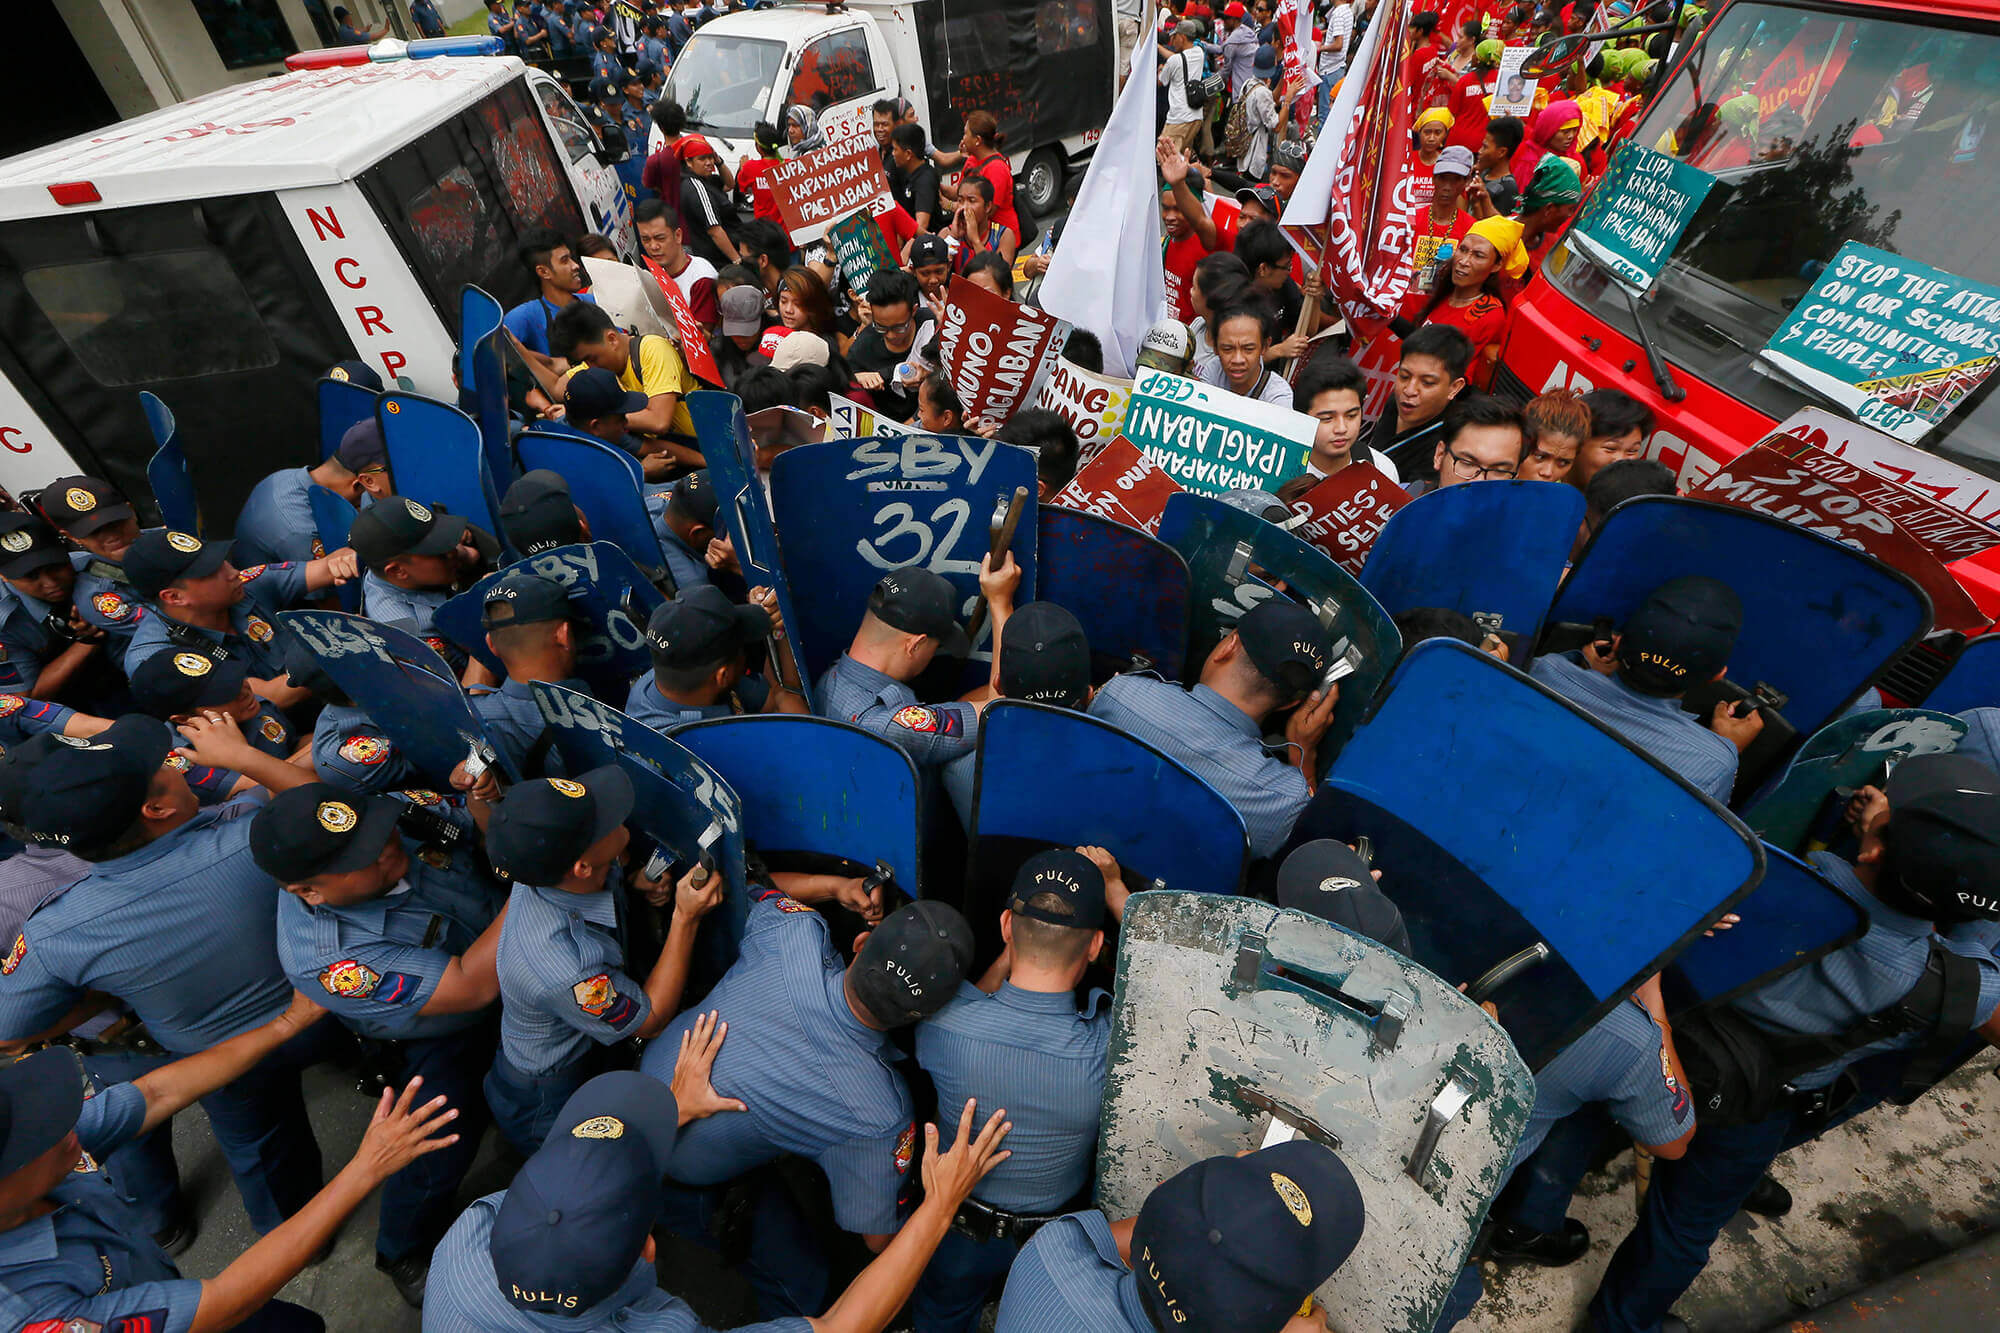 Protesters and police clashing in the Philippines